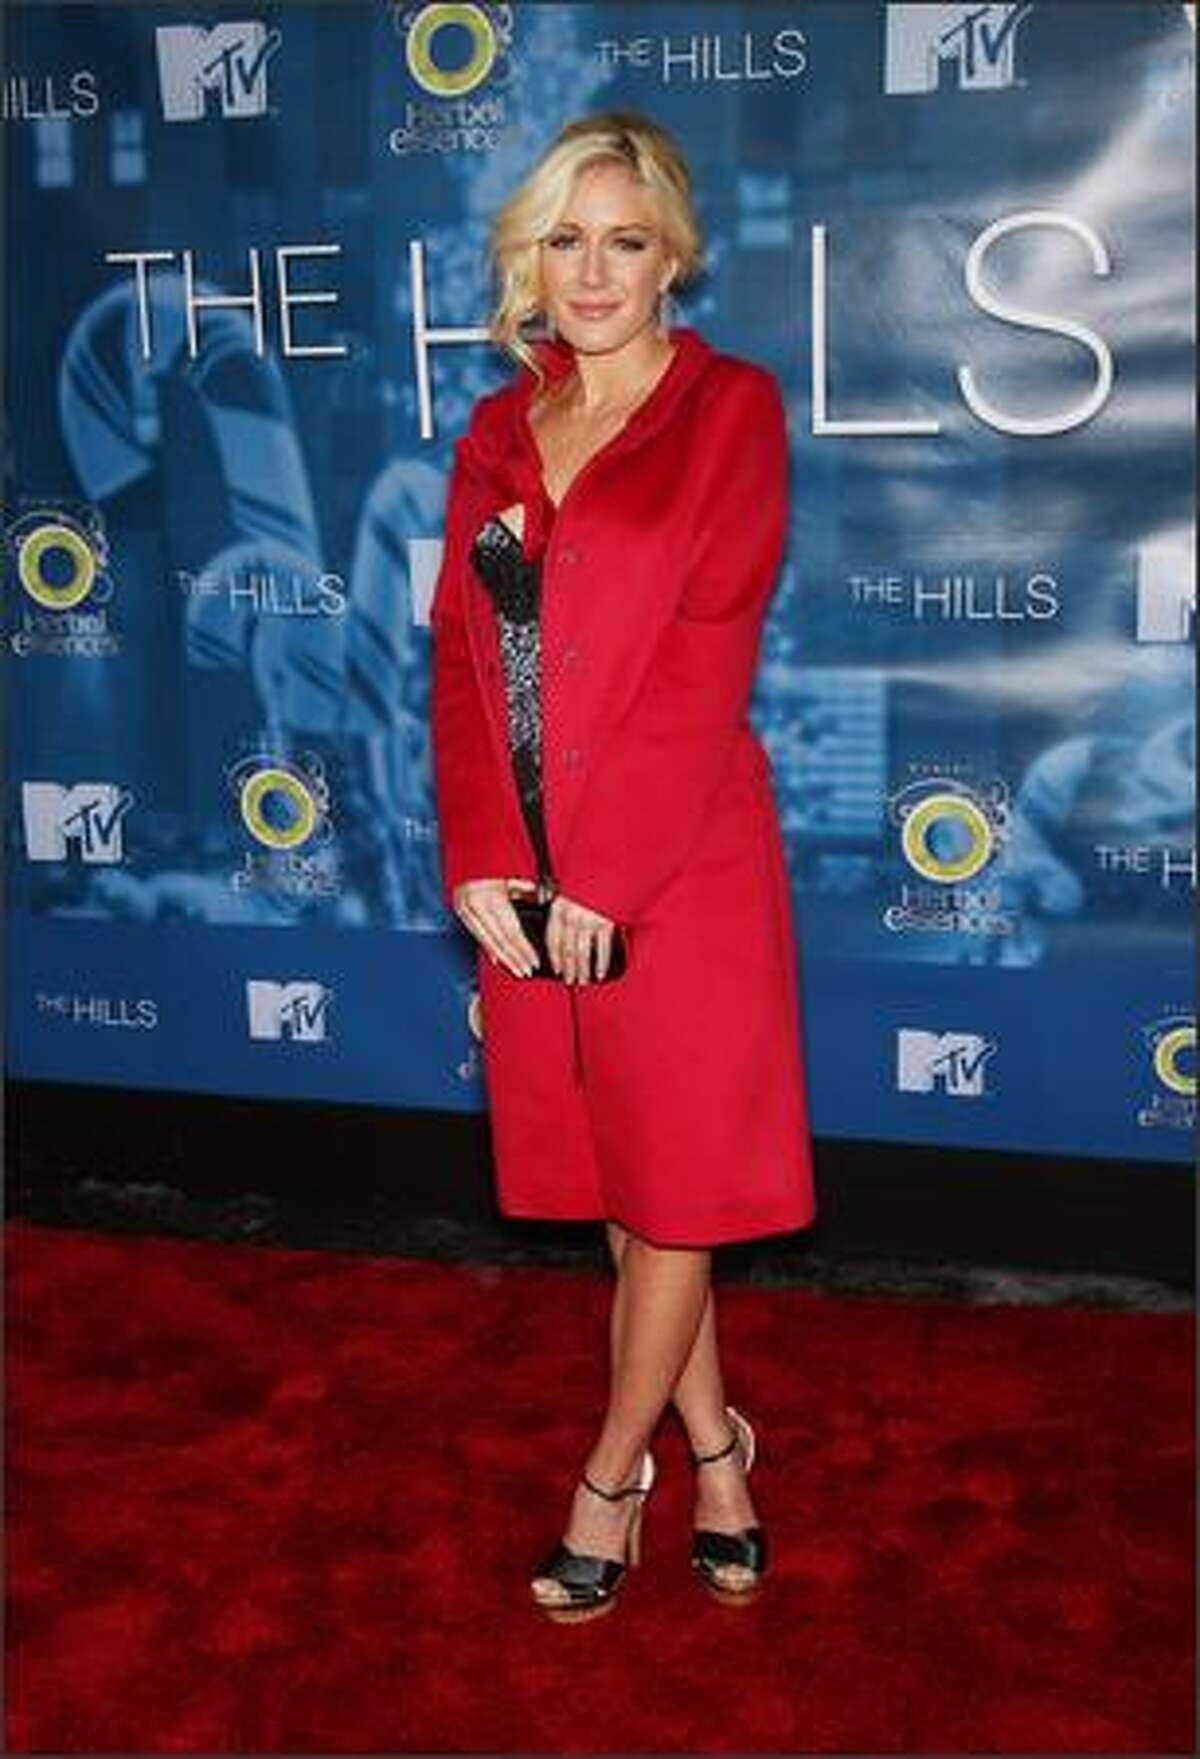 TV personality Heidi Montag attends the season 4 finale of MTV's